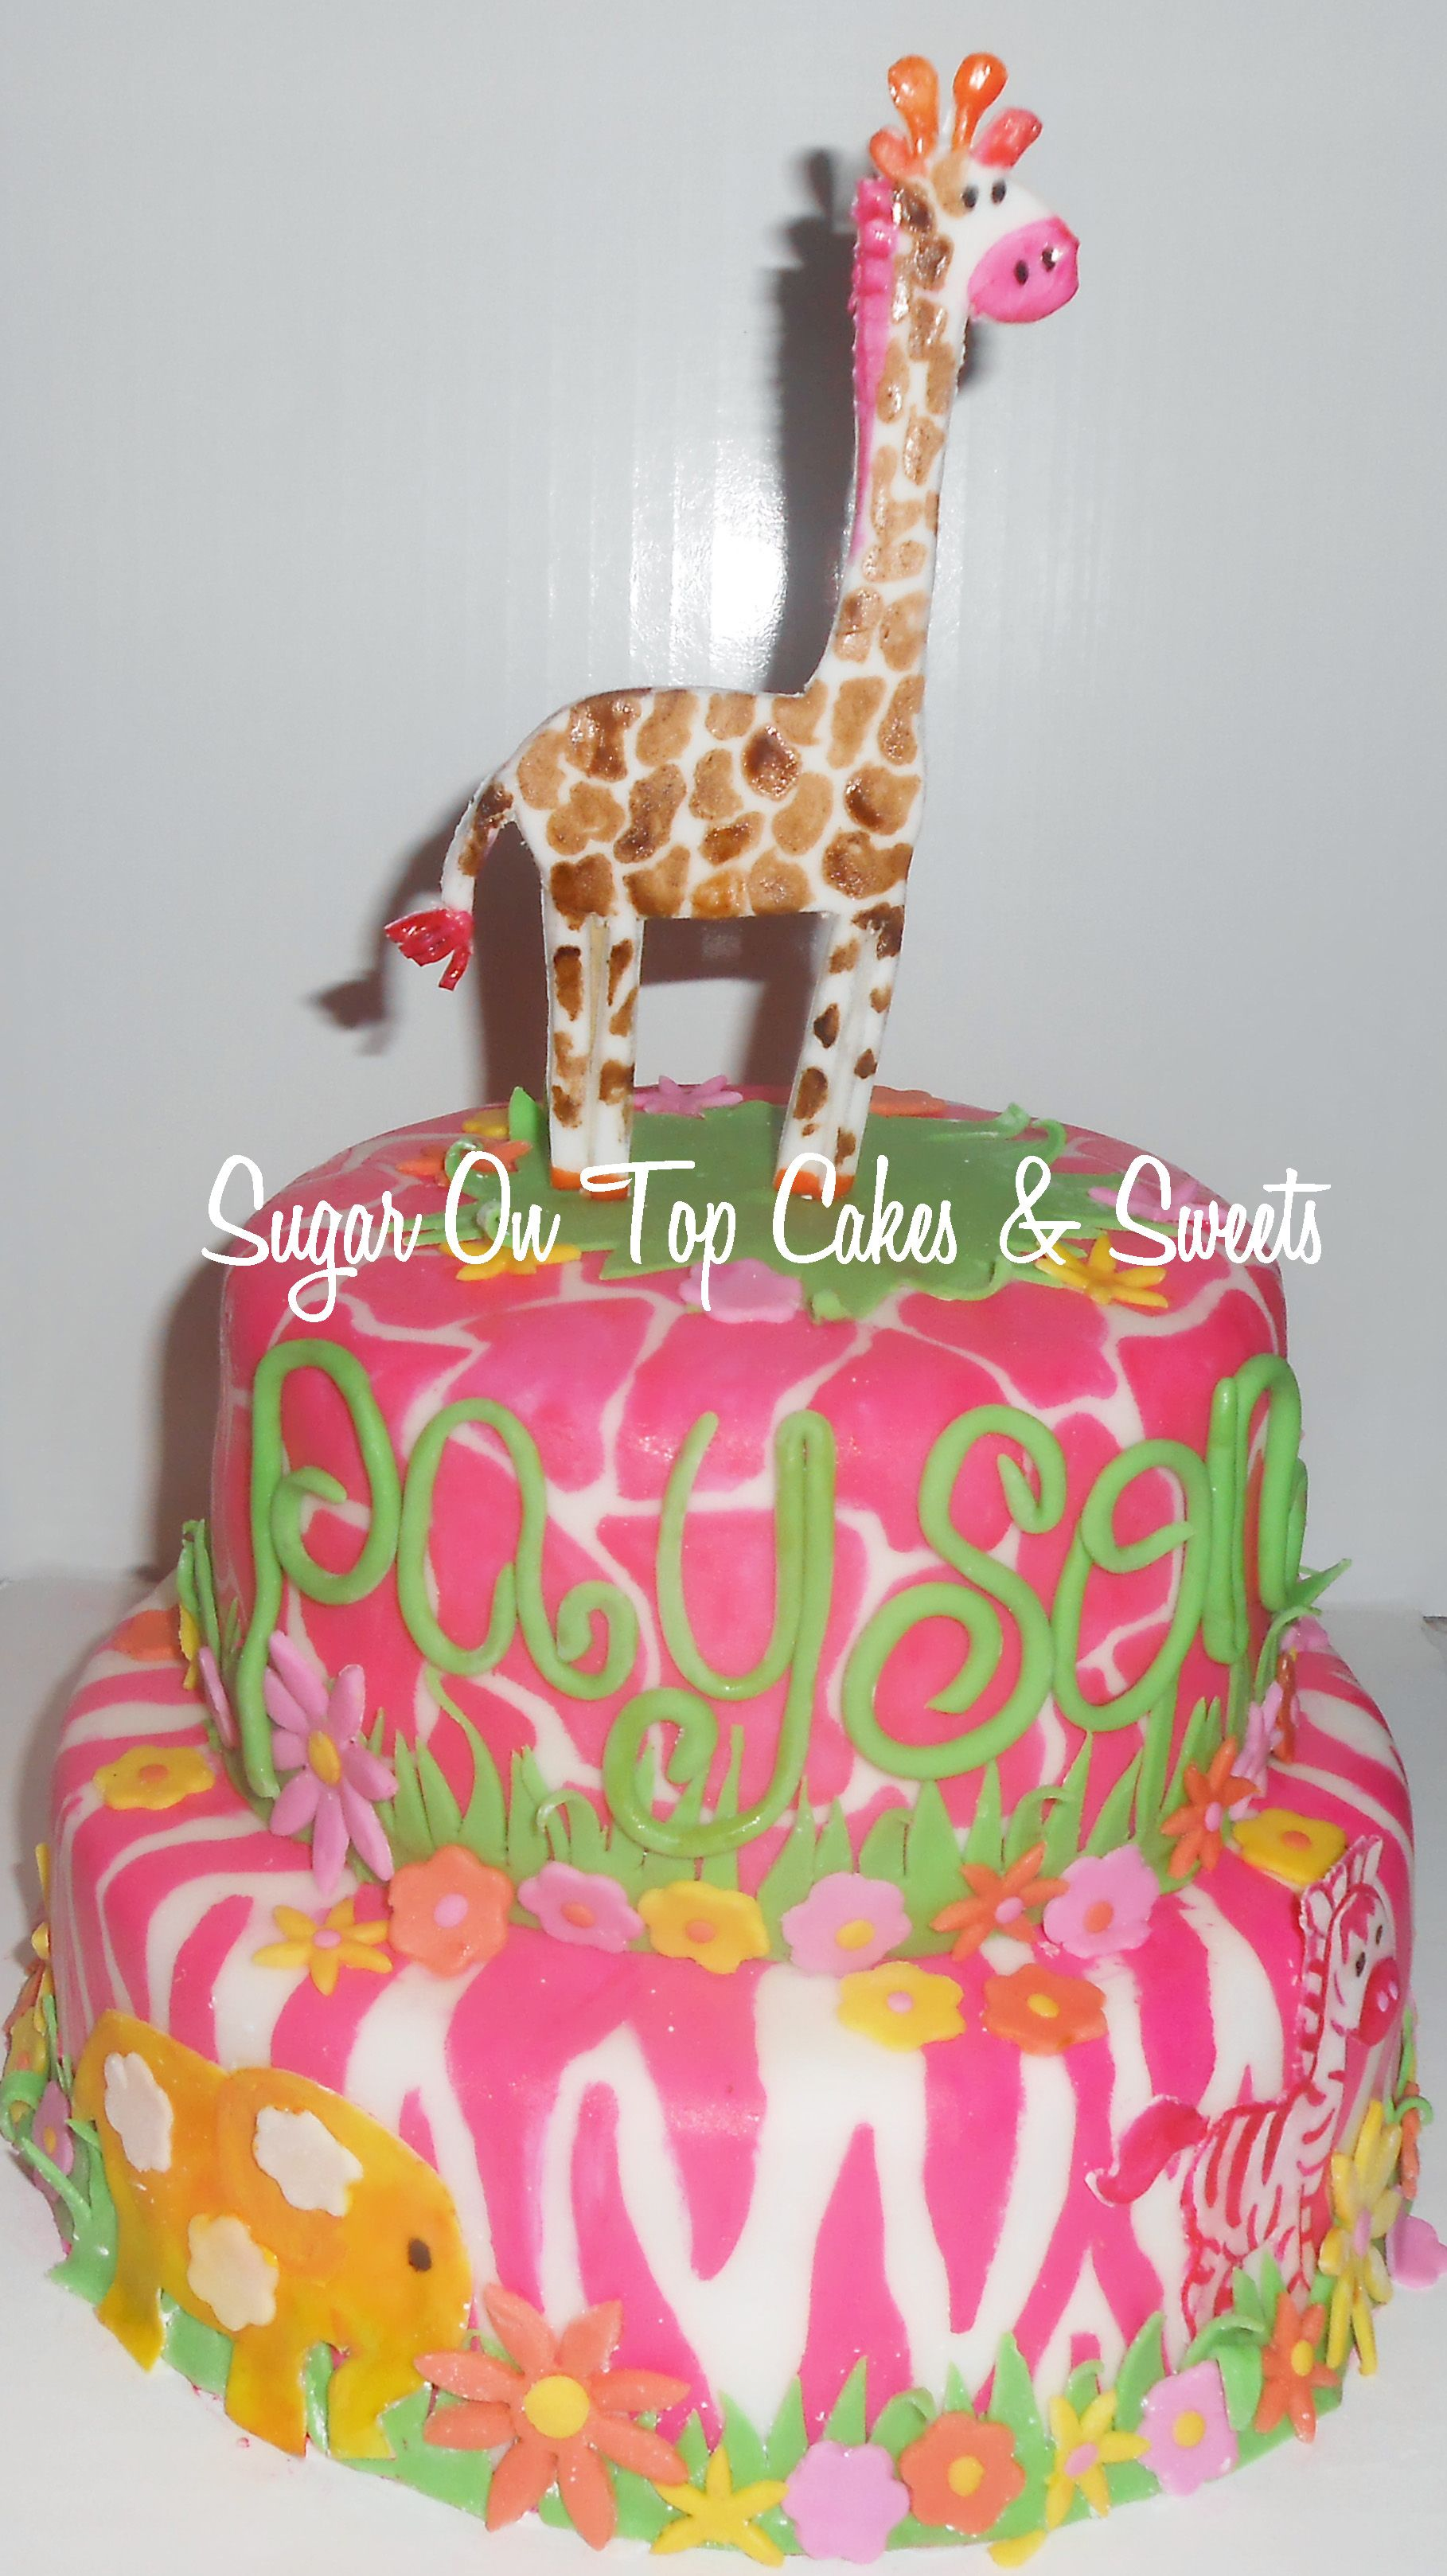 Pink Jungle Baby Shower Cake With Giraffe, Elephant And Zebra